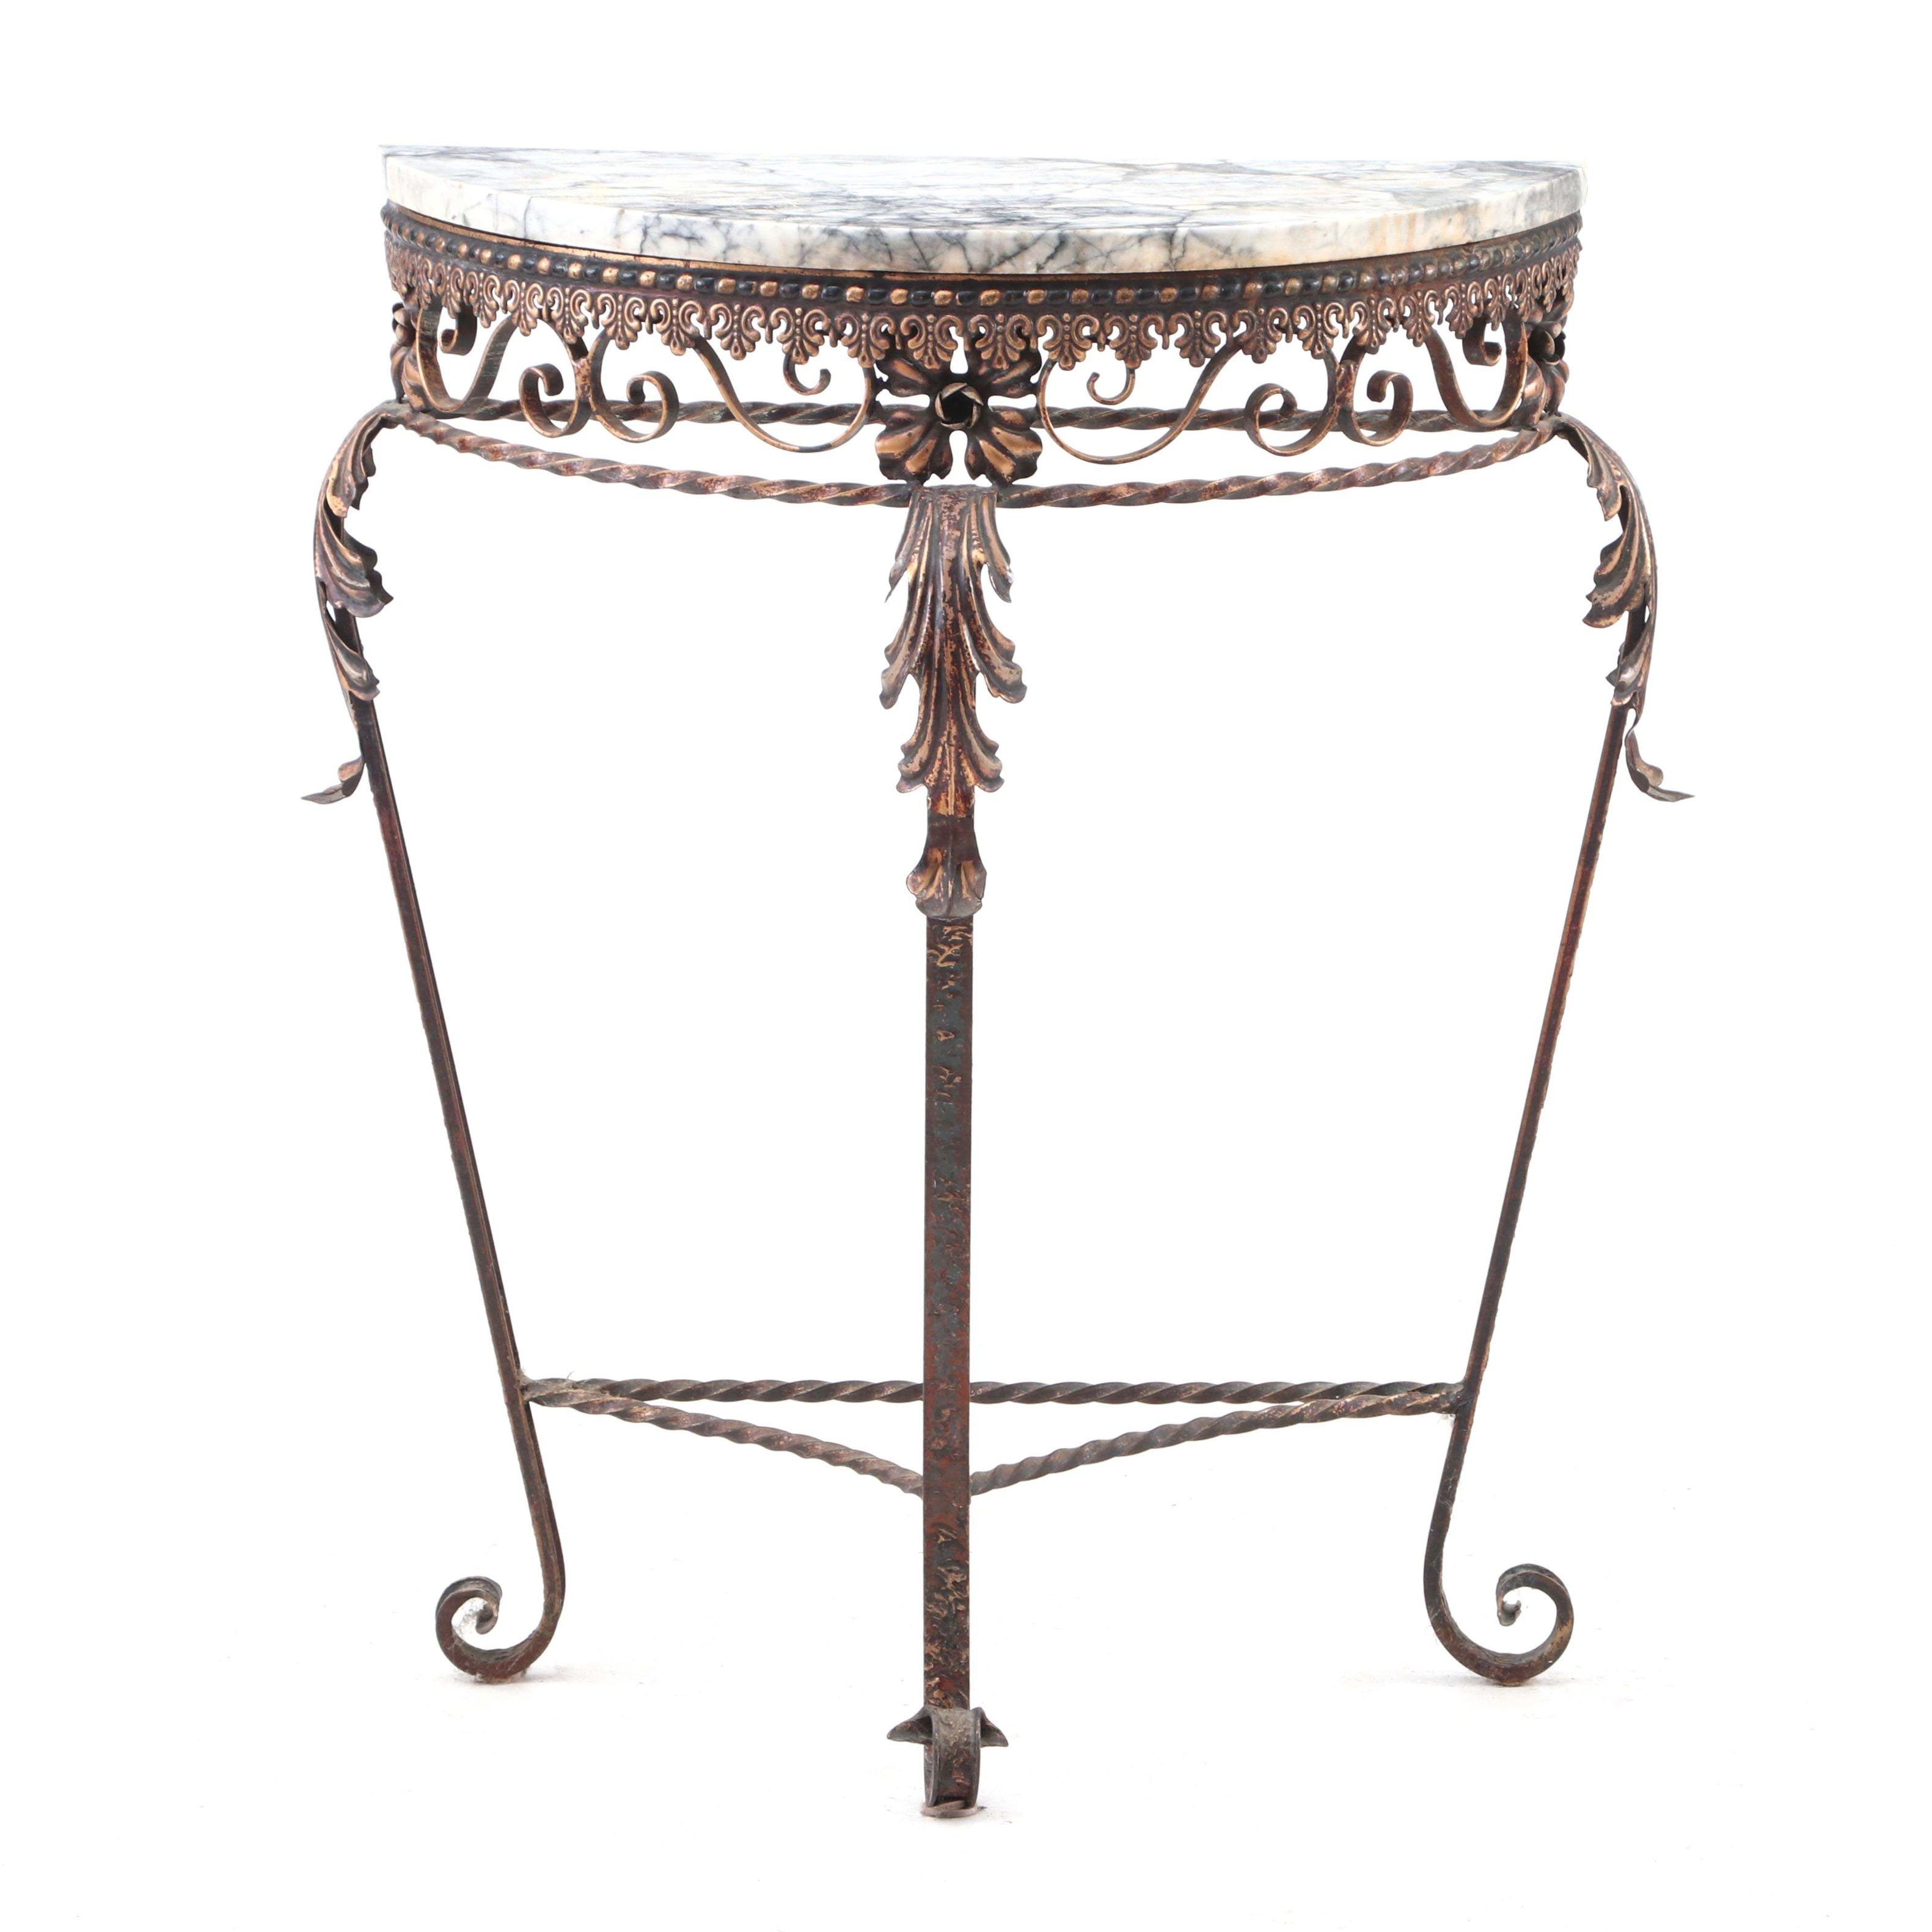 Neoclassical Style Iron and Marble Demilume Table